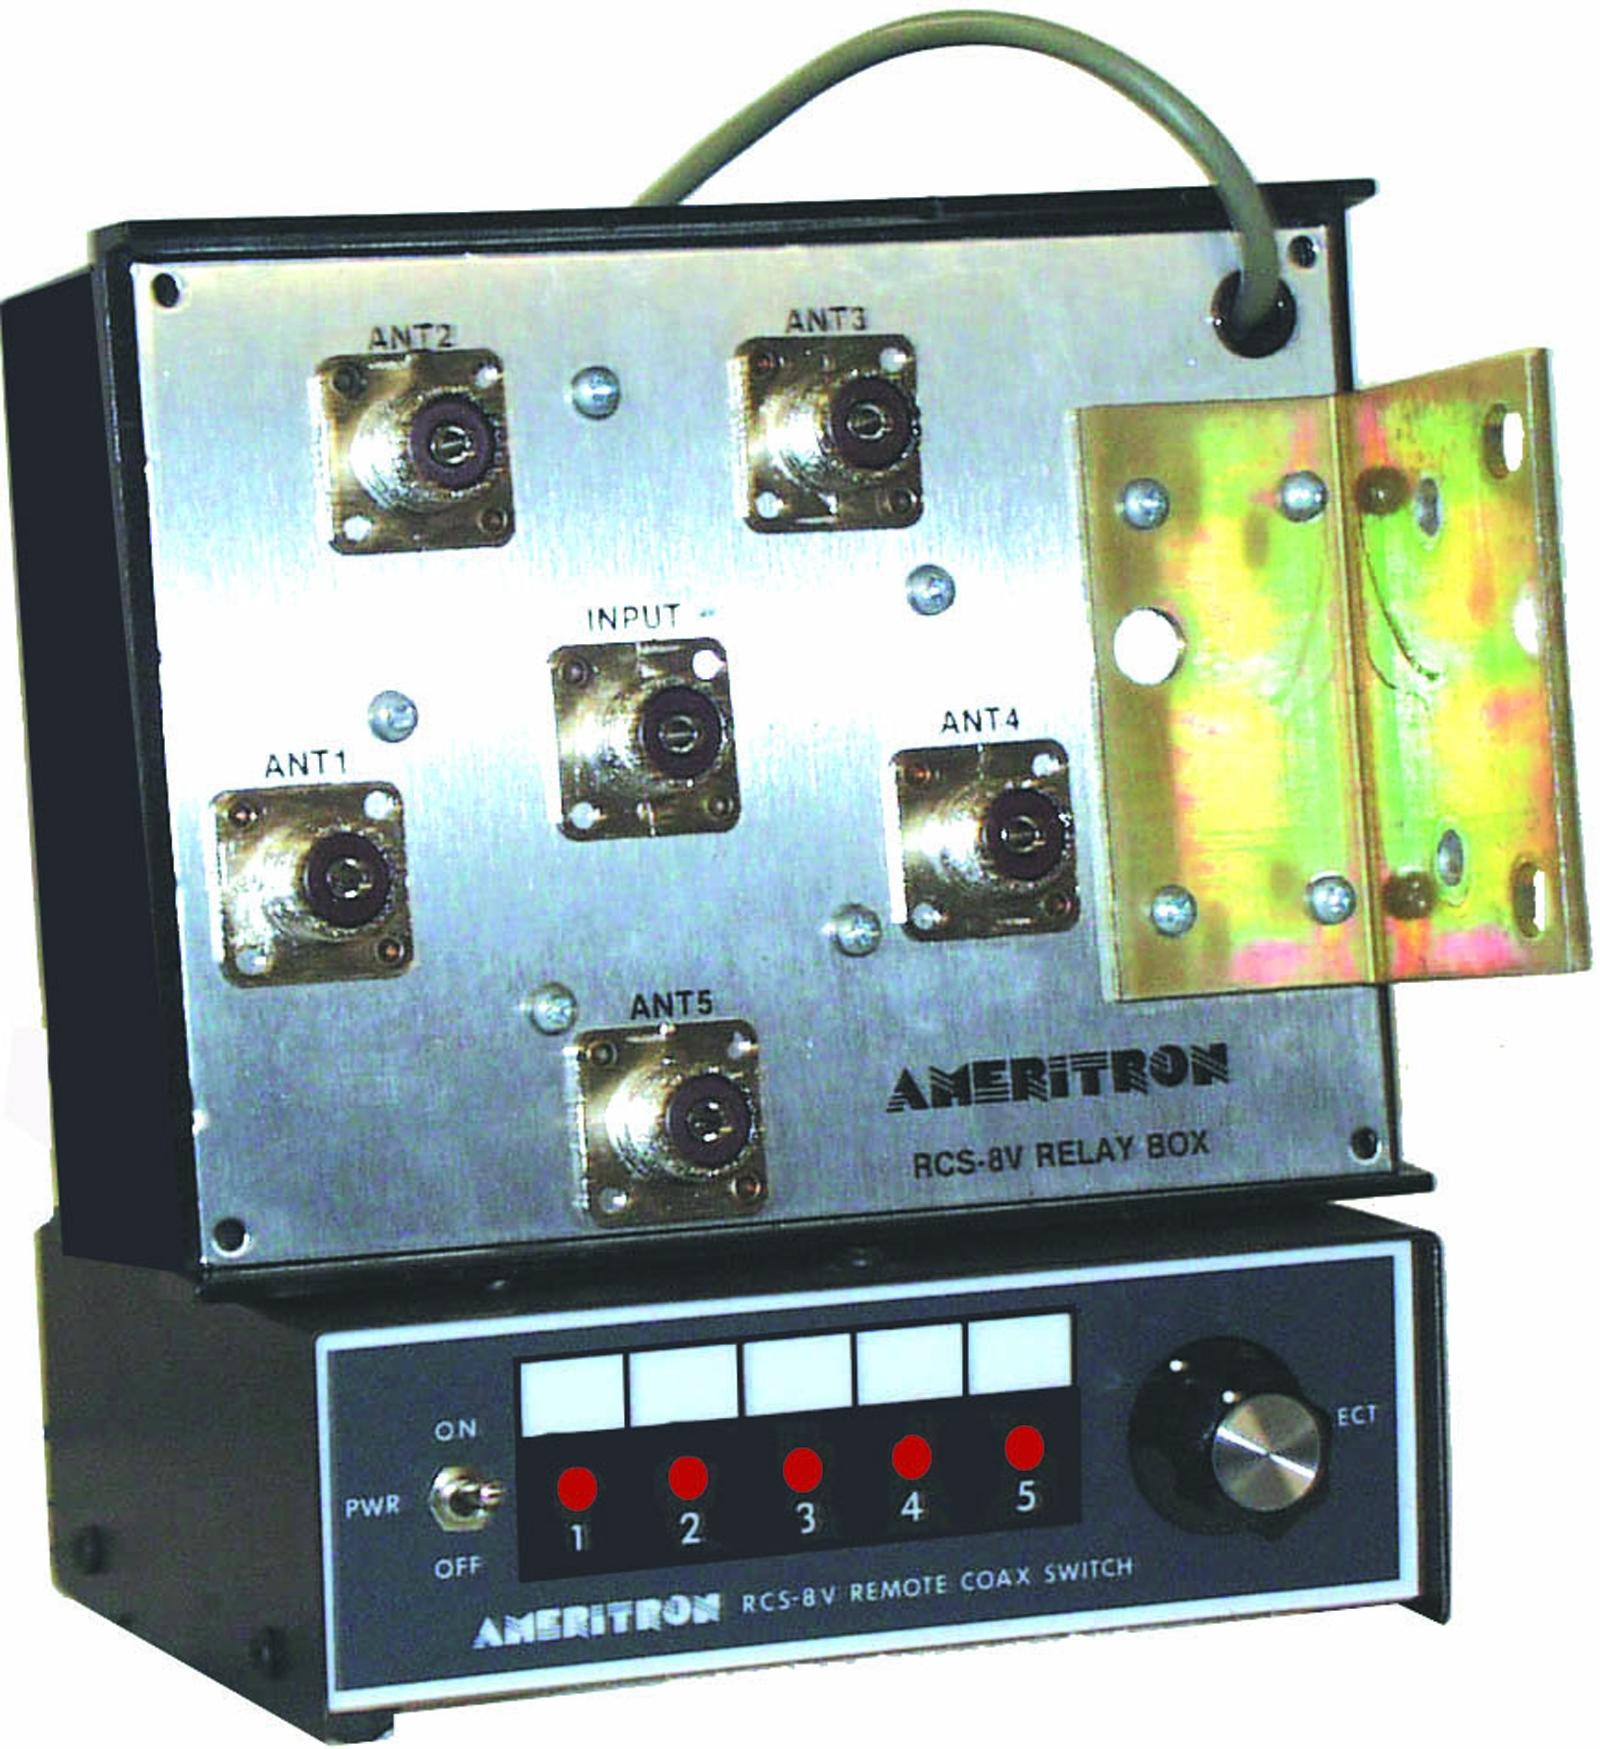 Ameritron 5-way Remote Coax Switch (N-Type) RCS-8VNX